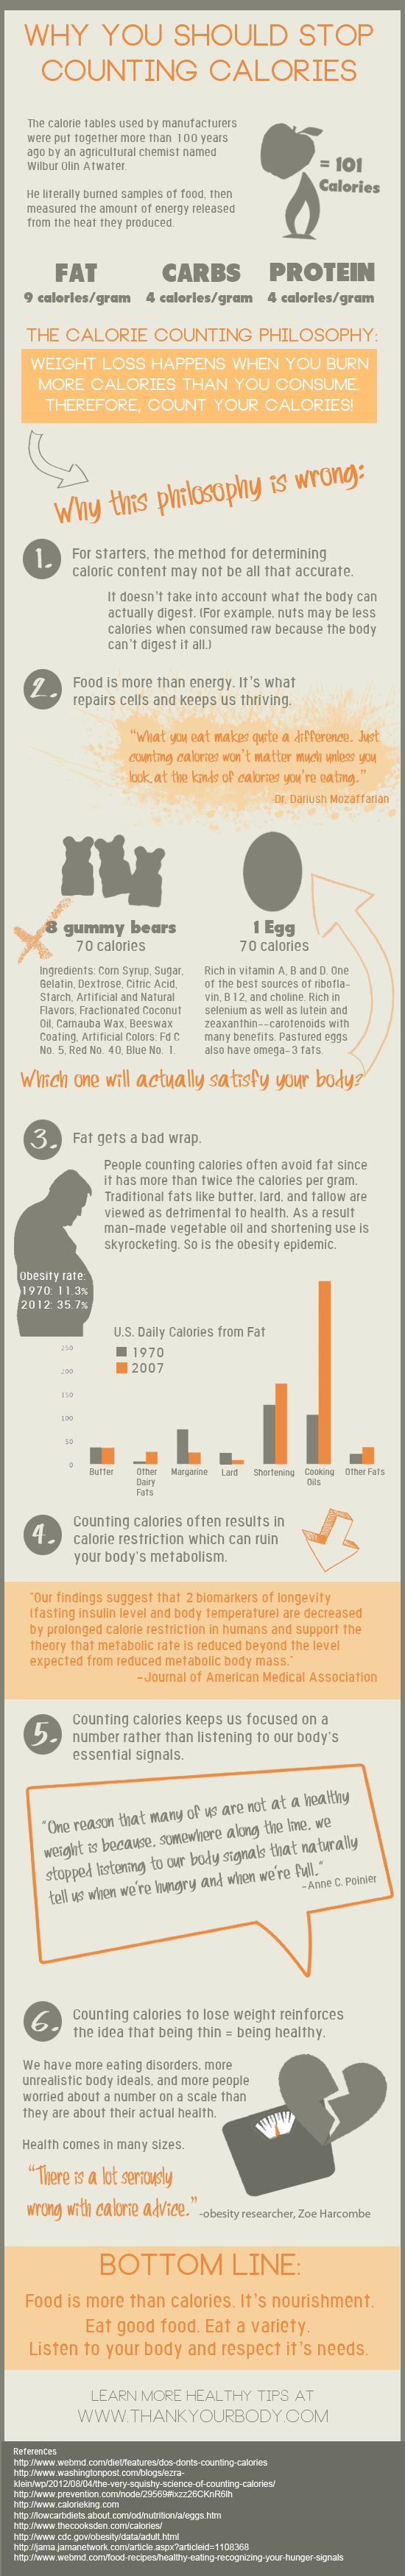 Why you should not count calories infographic